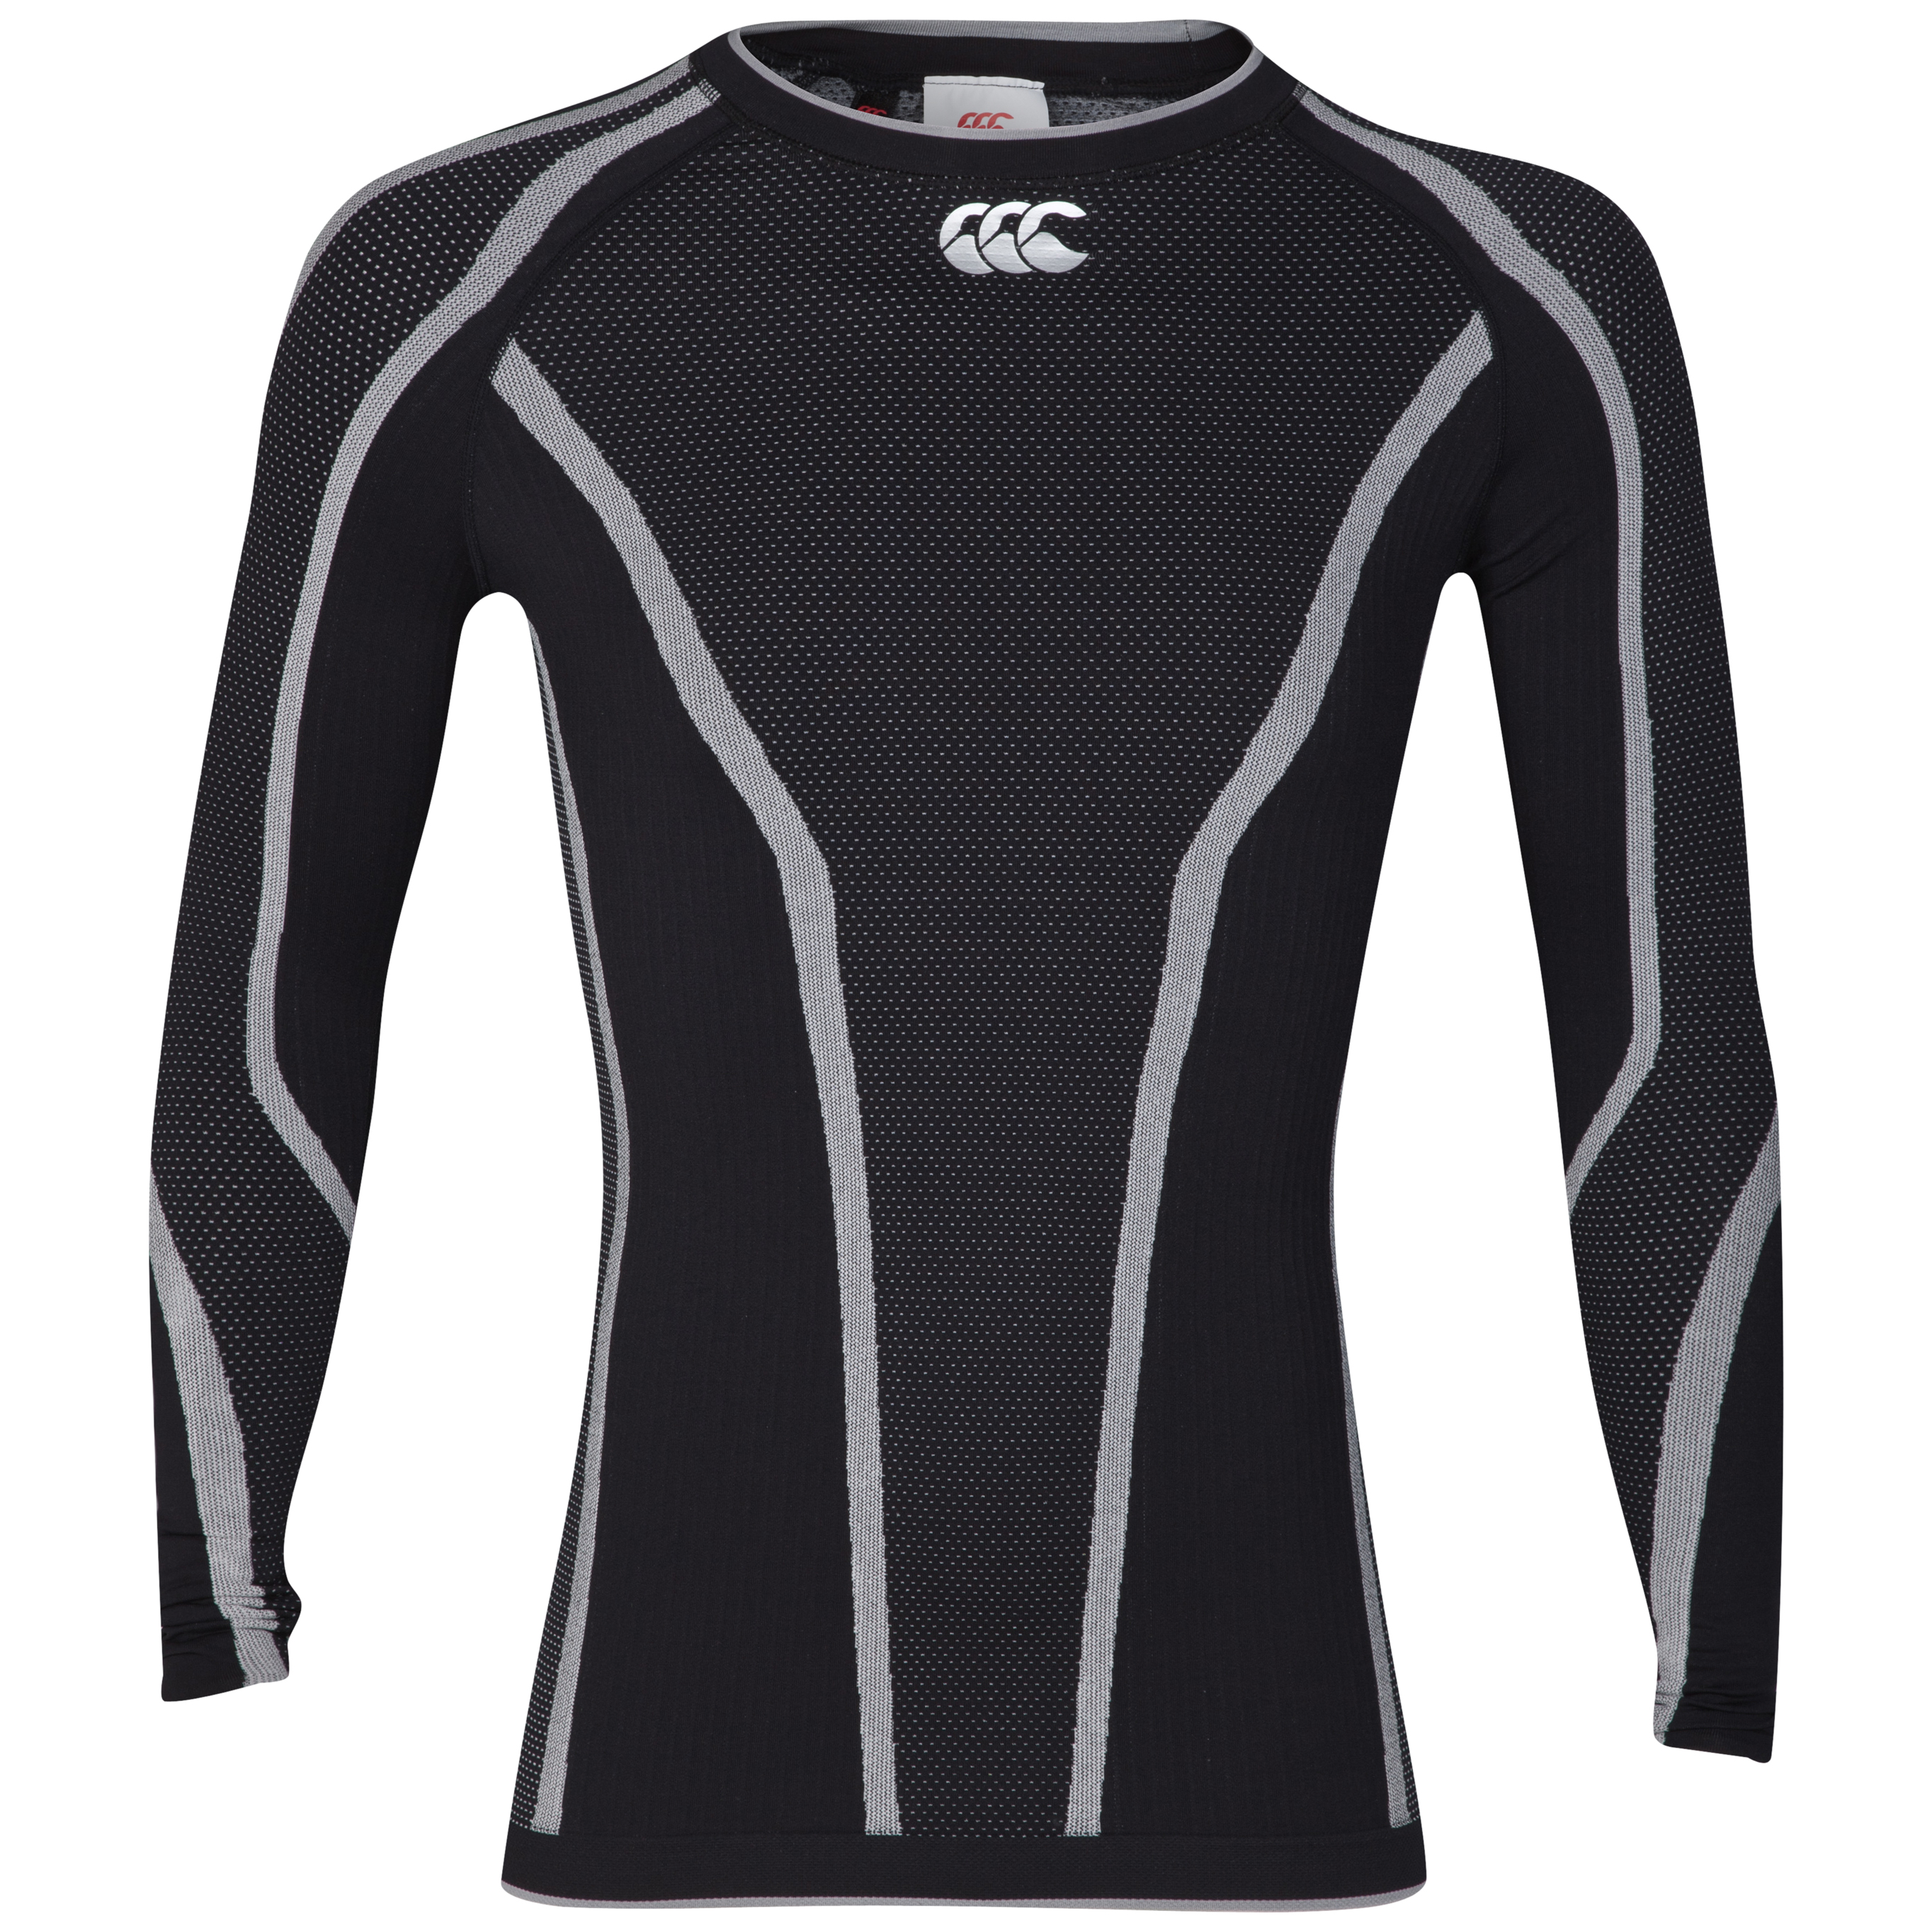 Canterbury iD Baselayer Top - Long Sleeve - Black/White